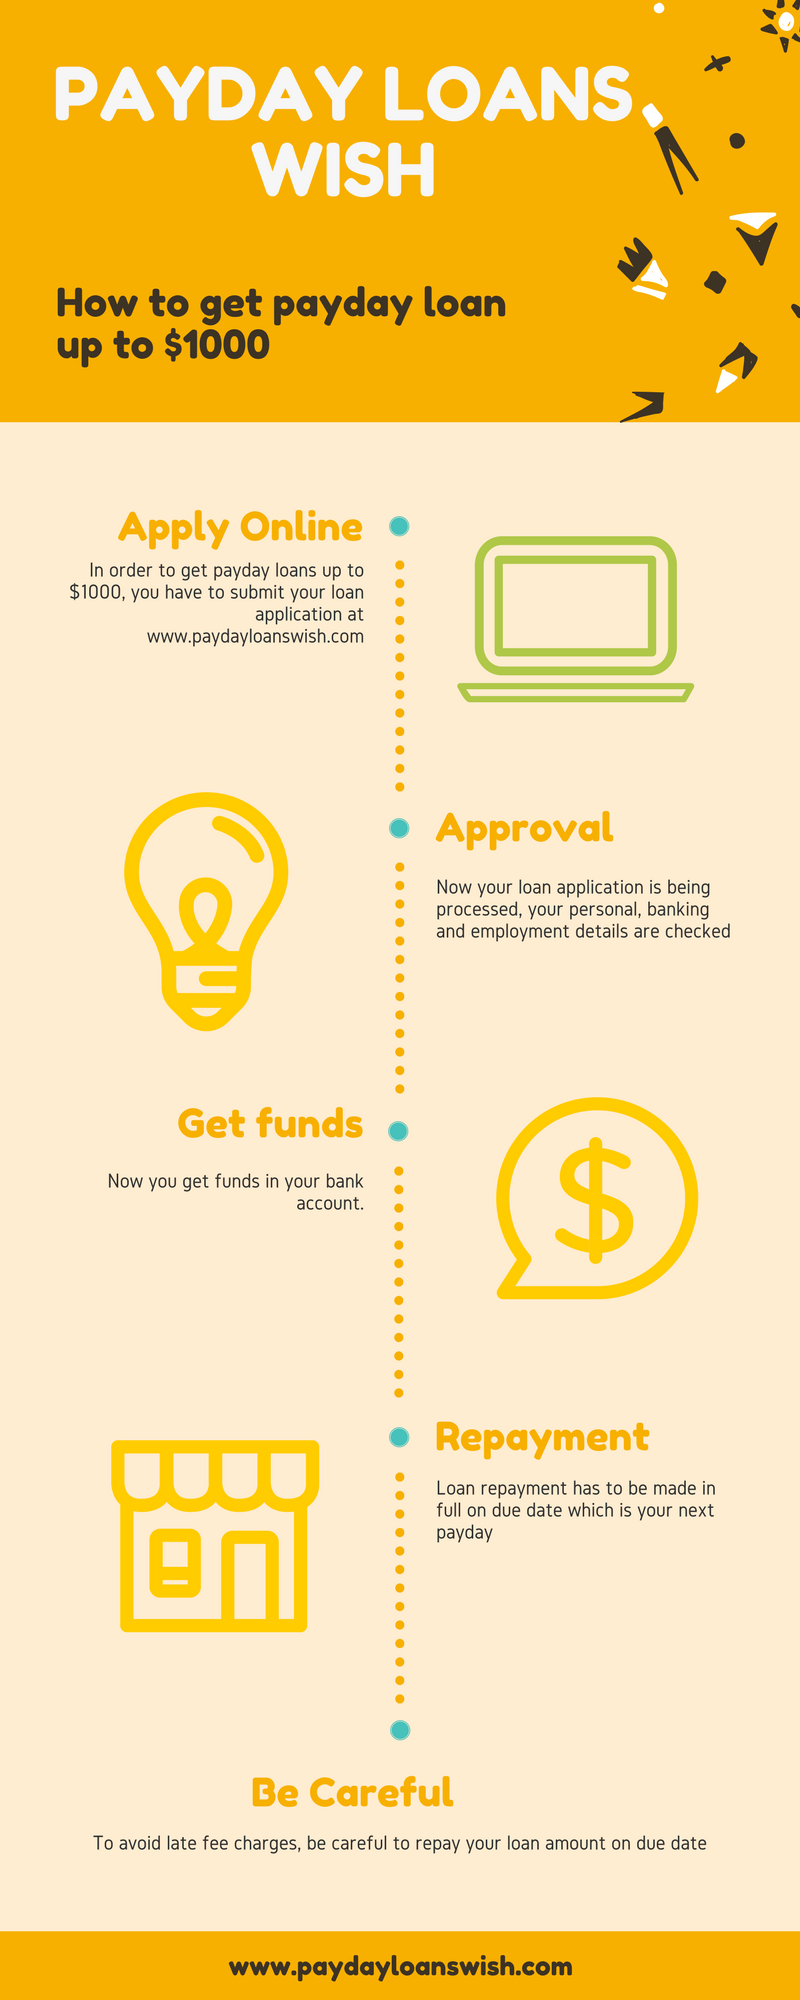 Pin by Reviews Simple on Infographic | Payday loans, Payday